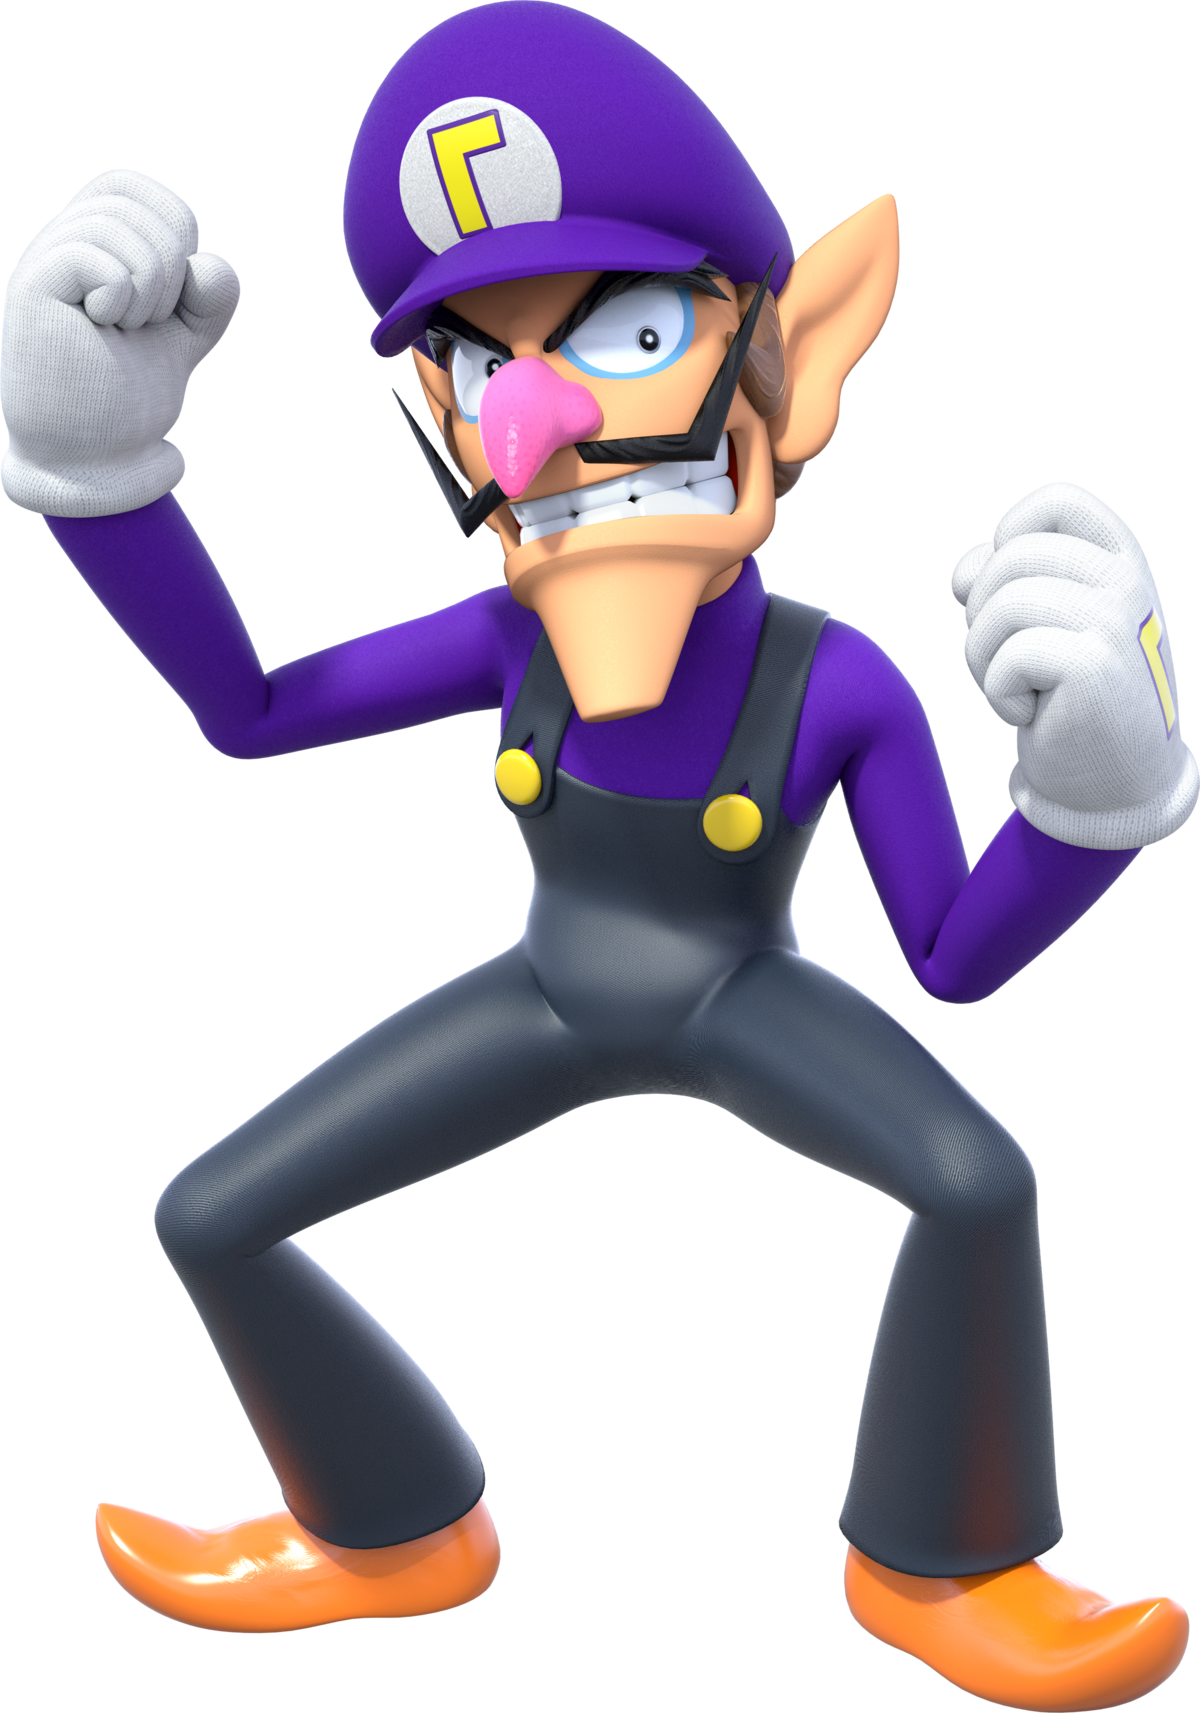 28775a8fd834 Waluigi - Super Mario Wiki, the Mario encyclopedia